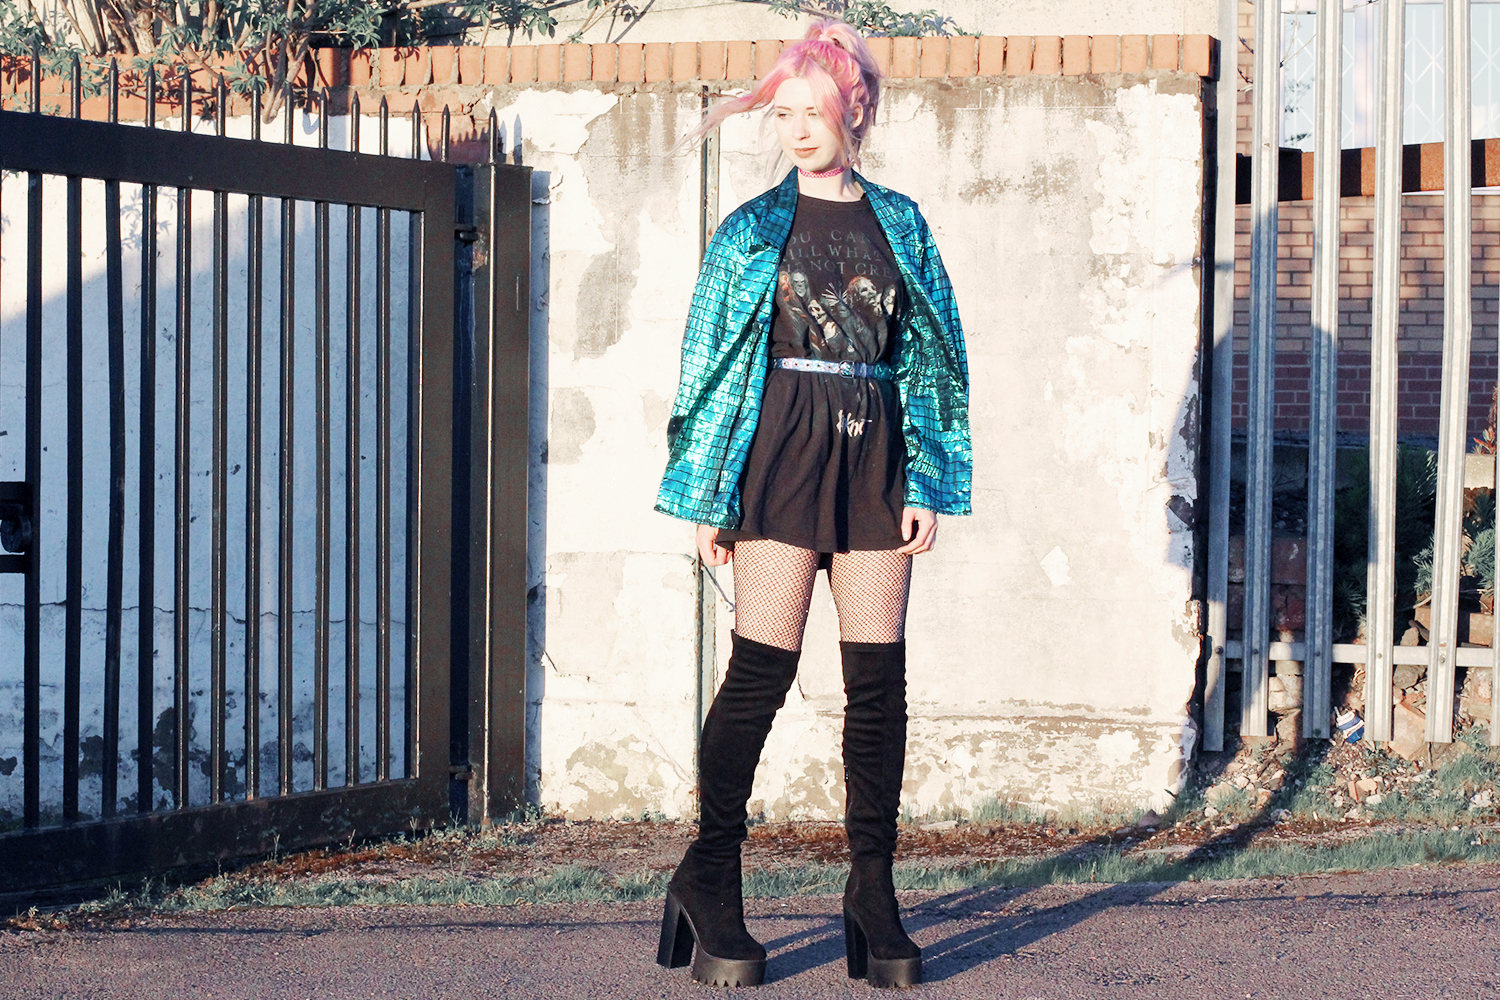 slipknot, thigh high boots, vintage jacket